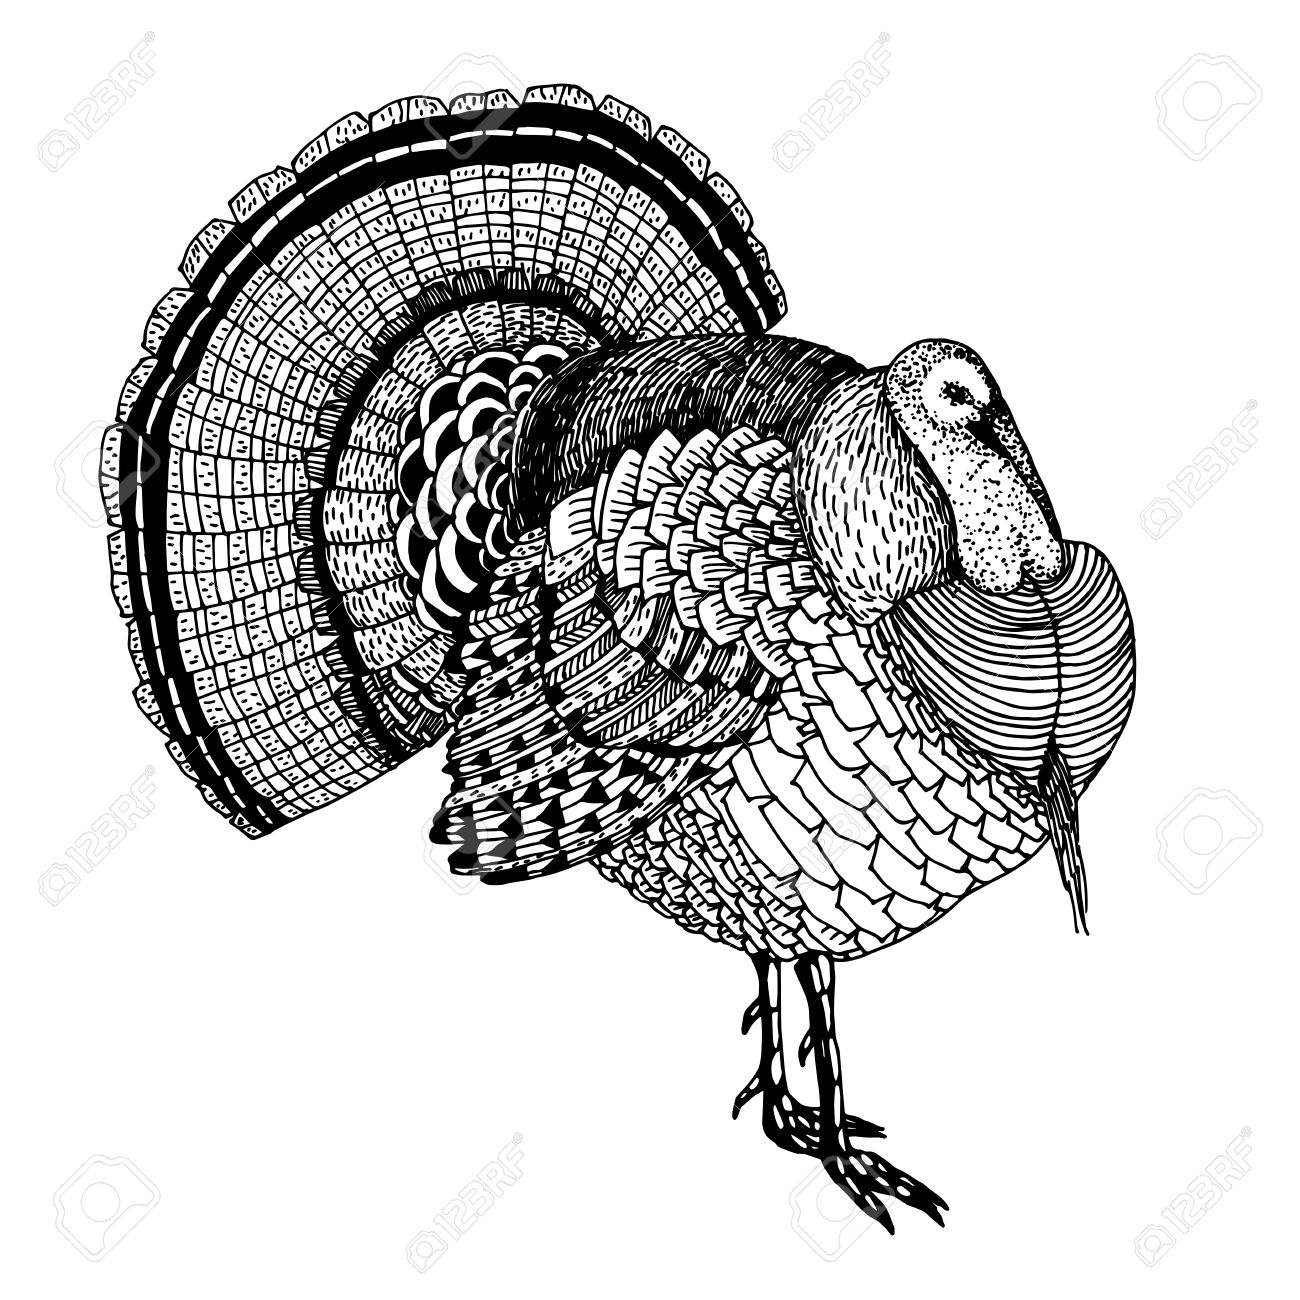 abstract hand drawn vector illustration with a turkey isolated